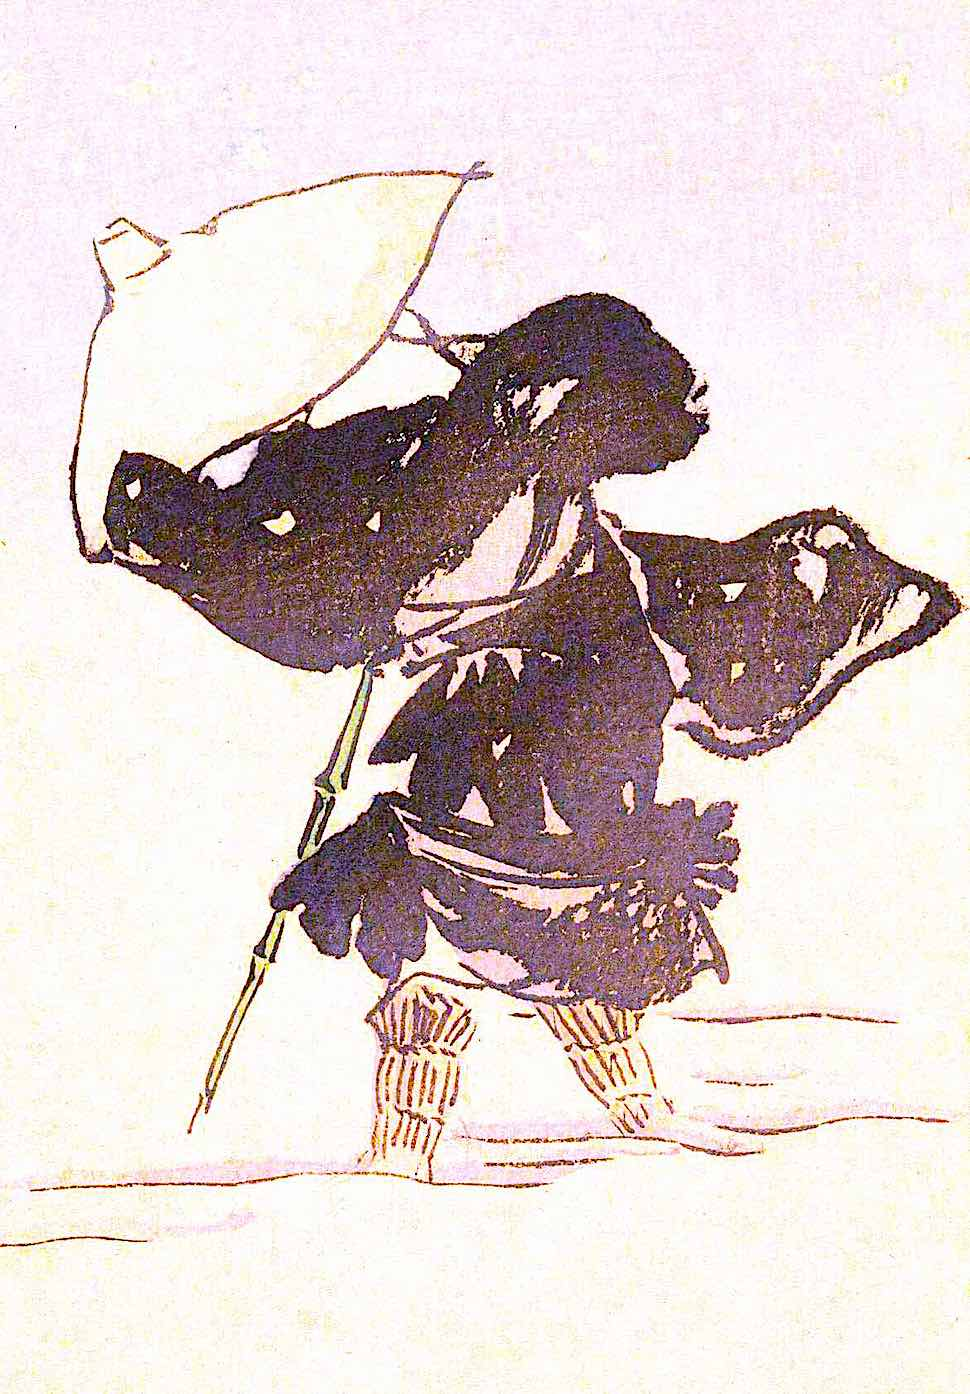 regular clothing in 1892 Japan, walking in a snow storm